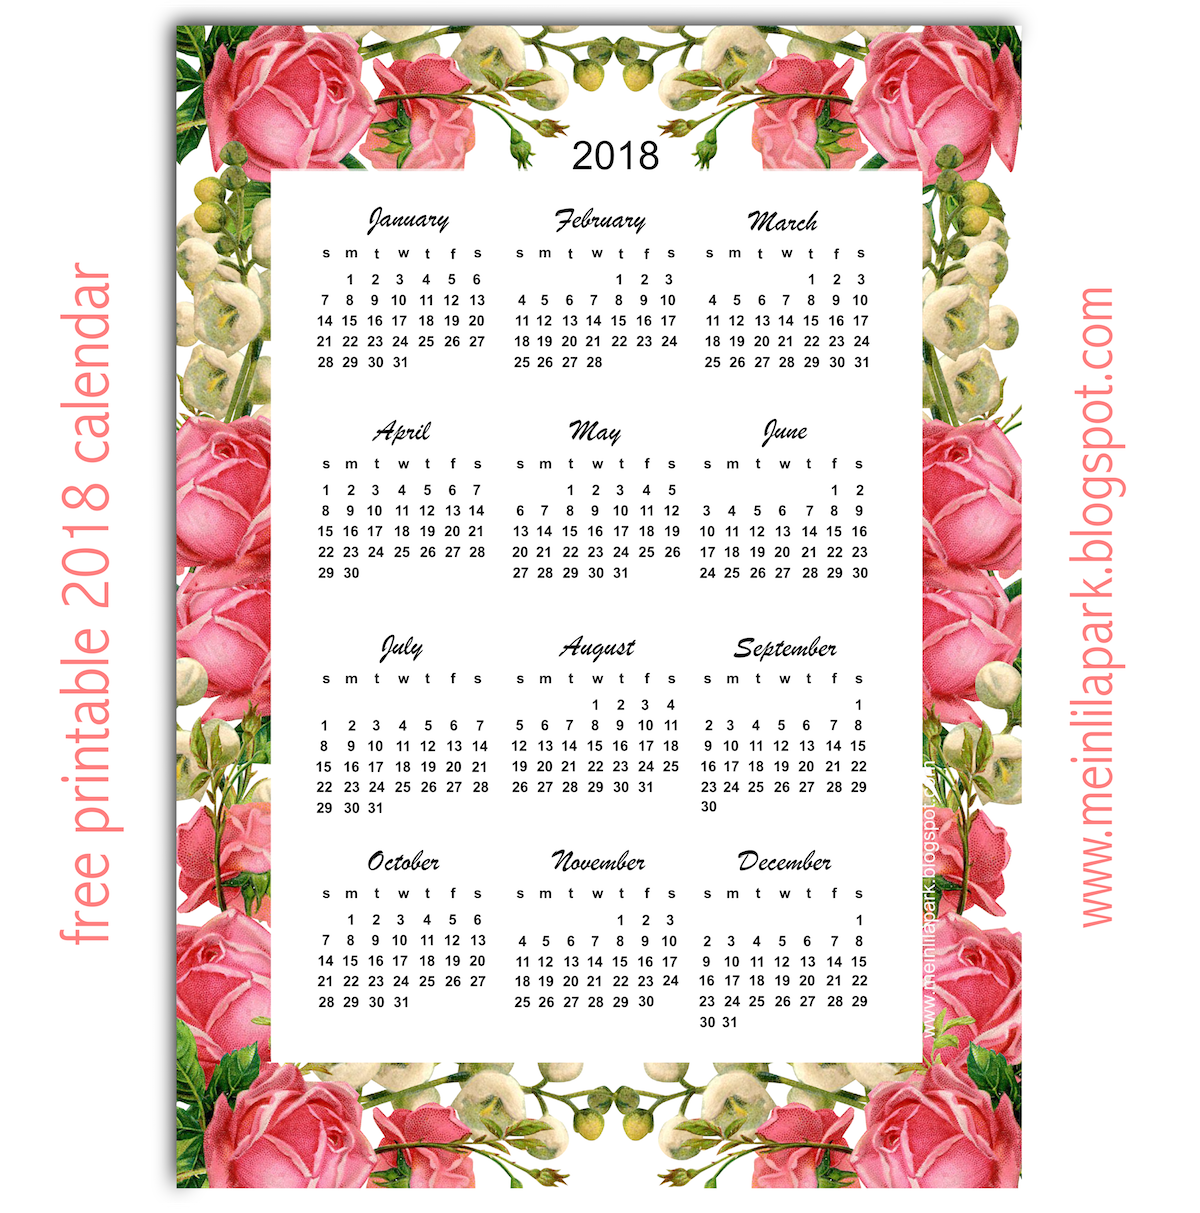 2017 2018 calendar free printable two year pdf calendars